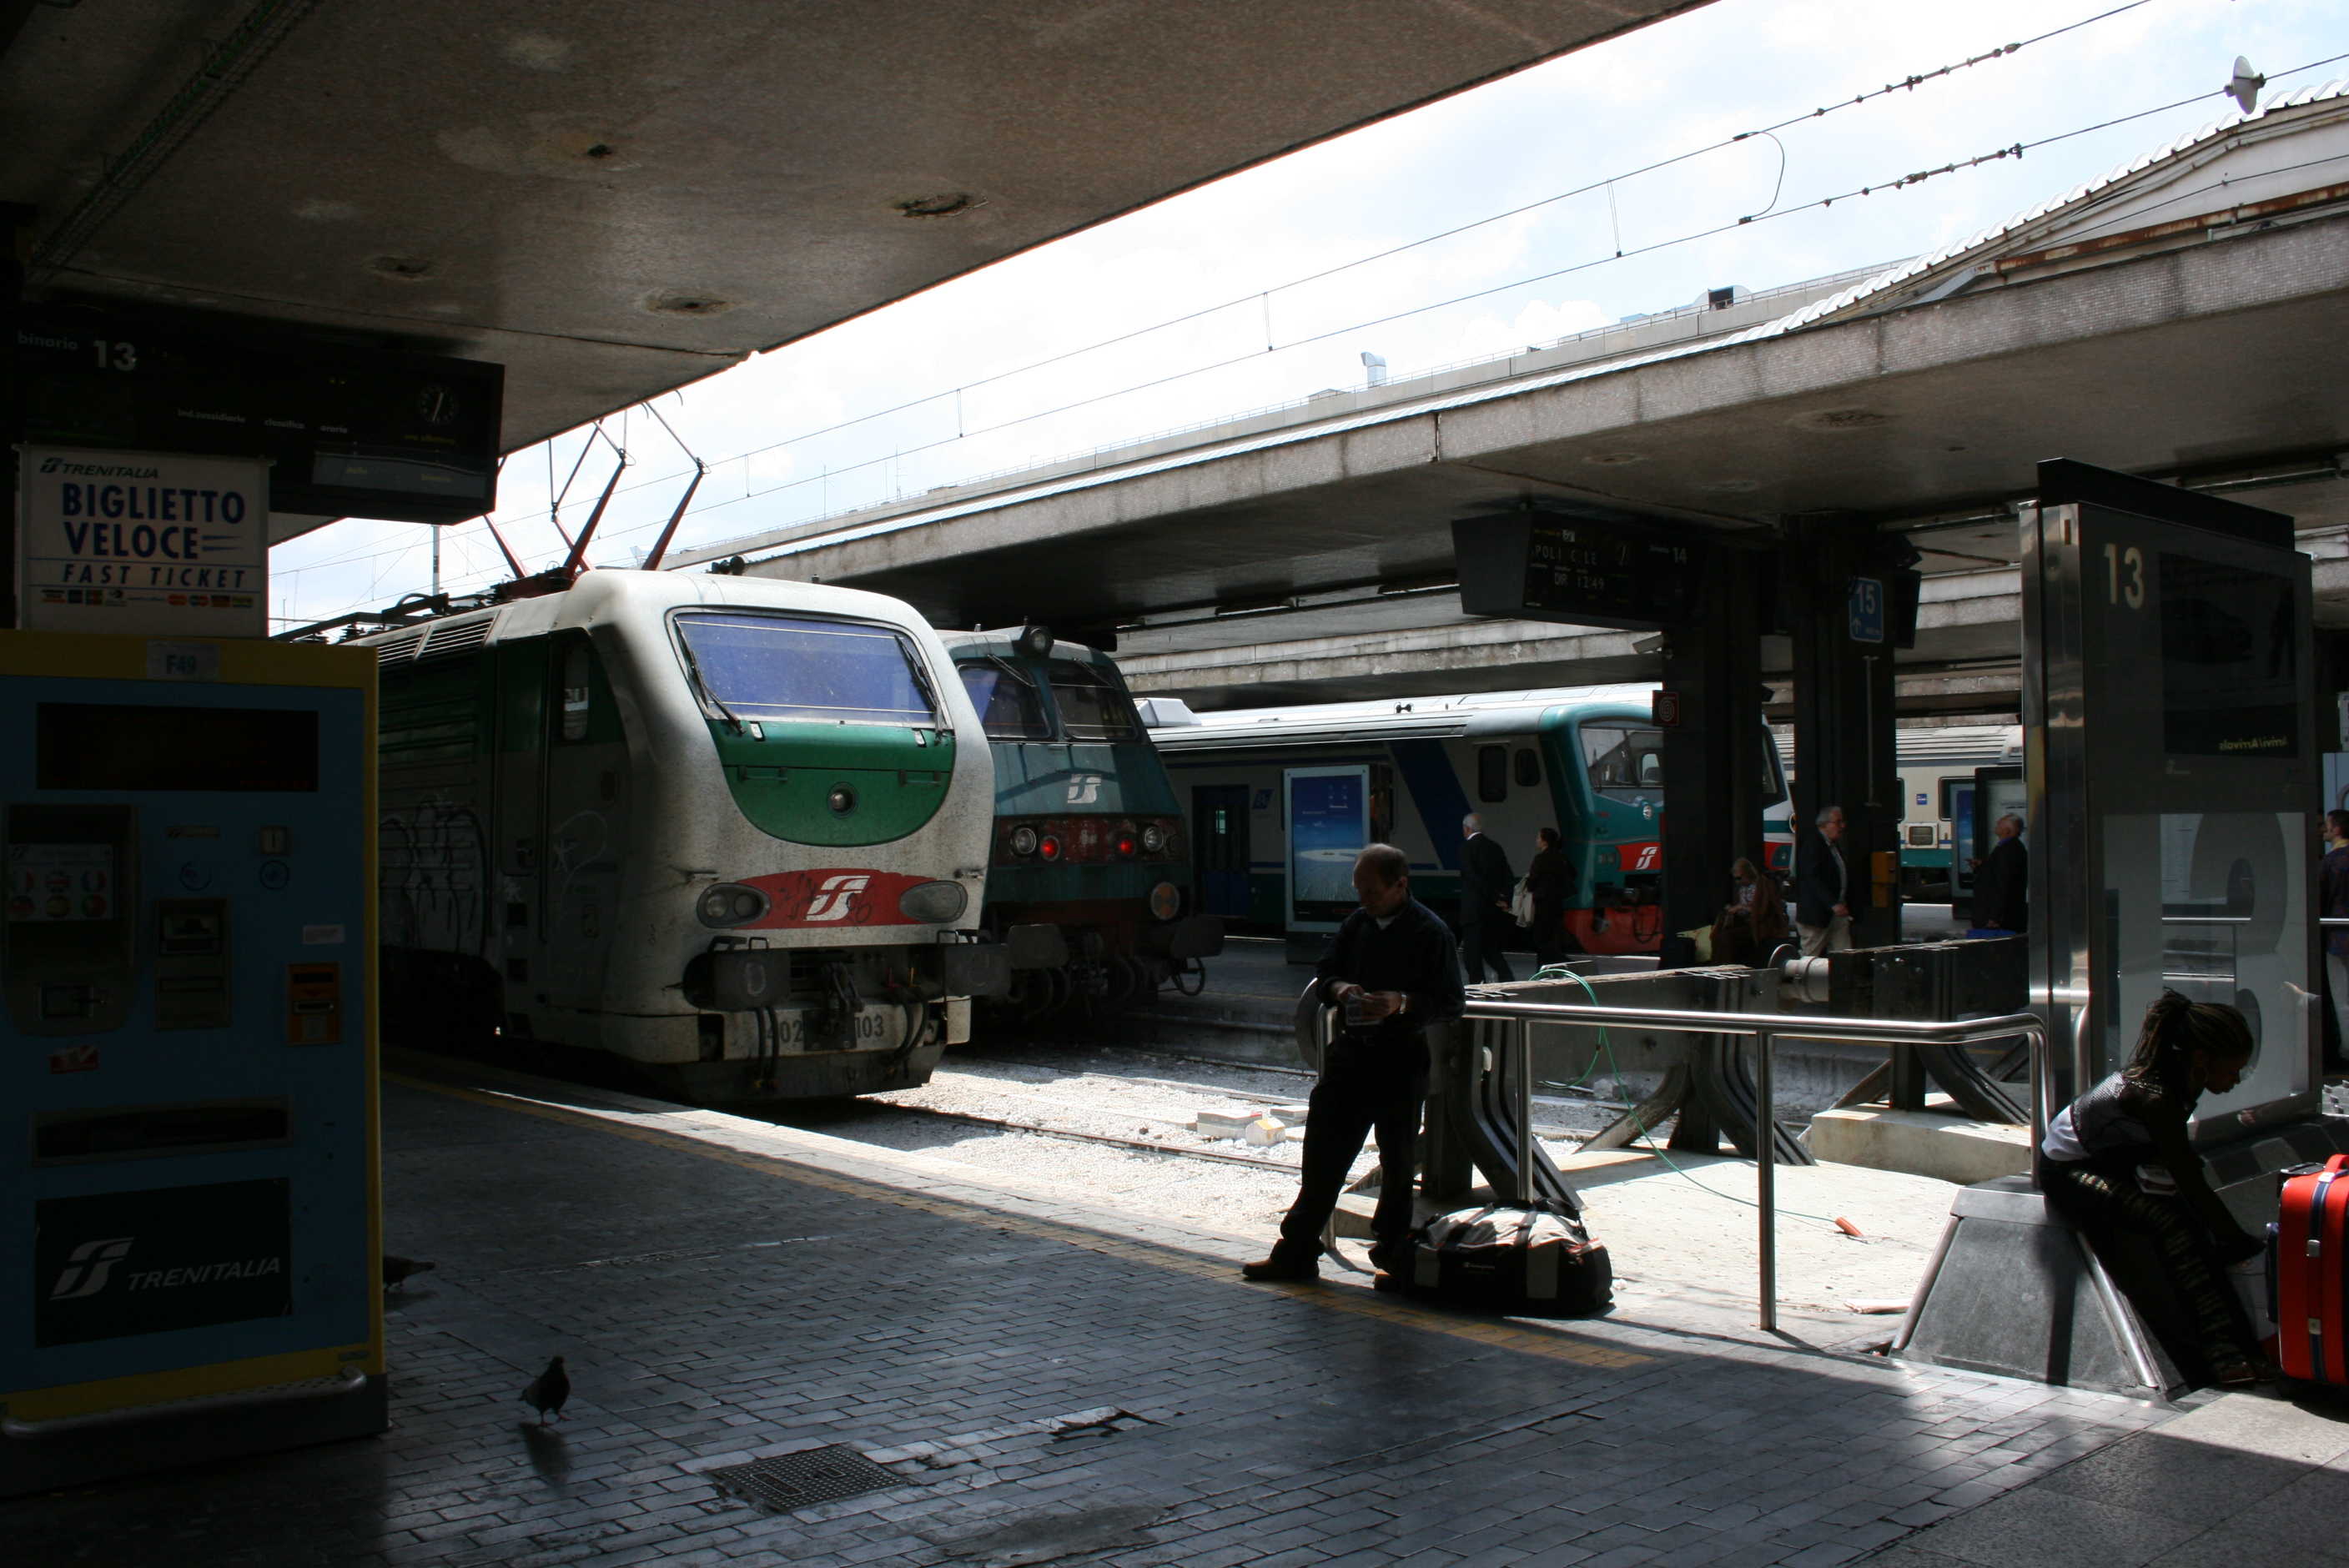 italy train travel information